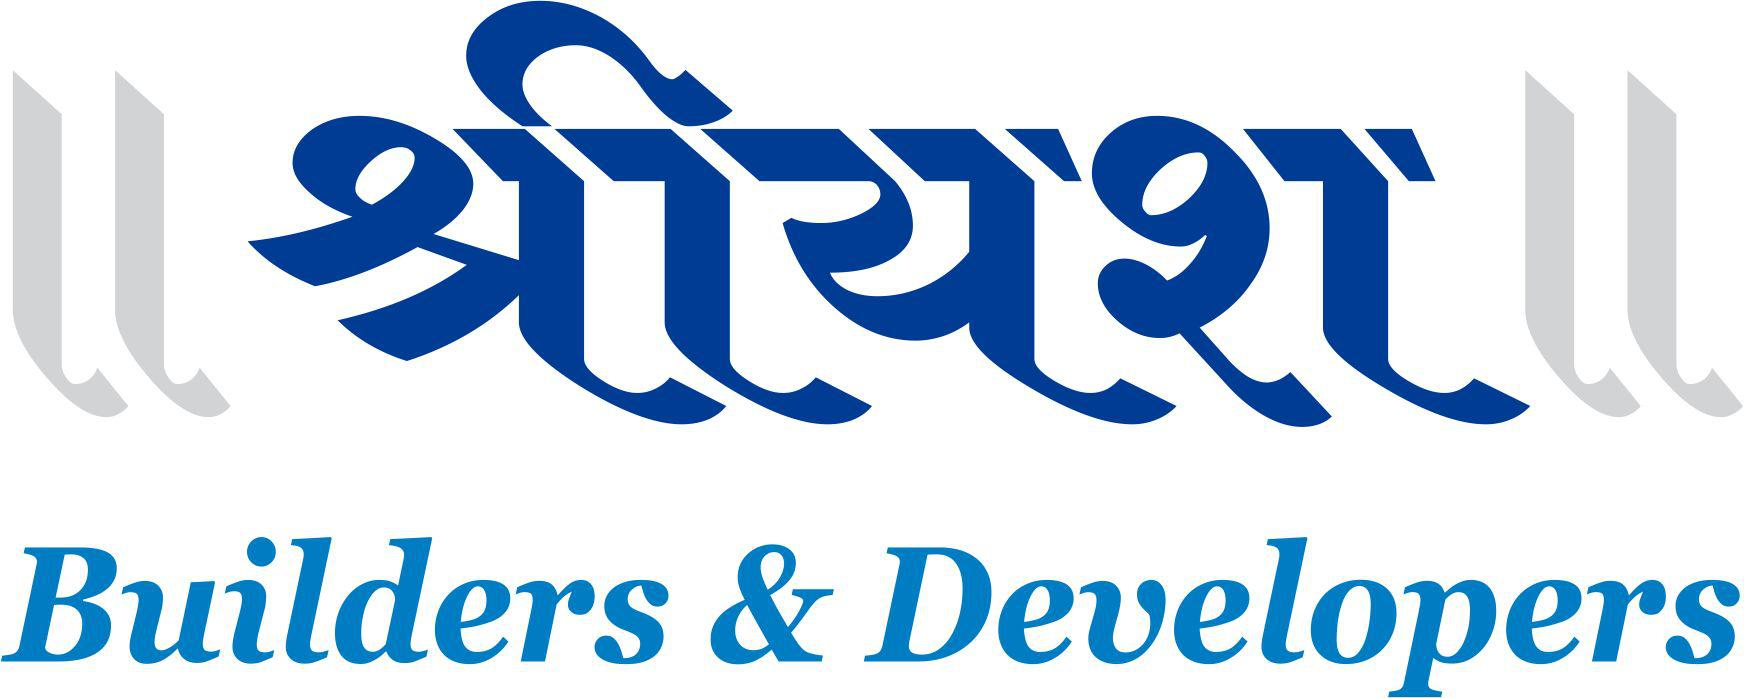 Shreeyash Builders & Developers Logo